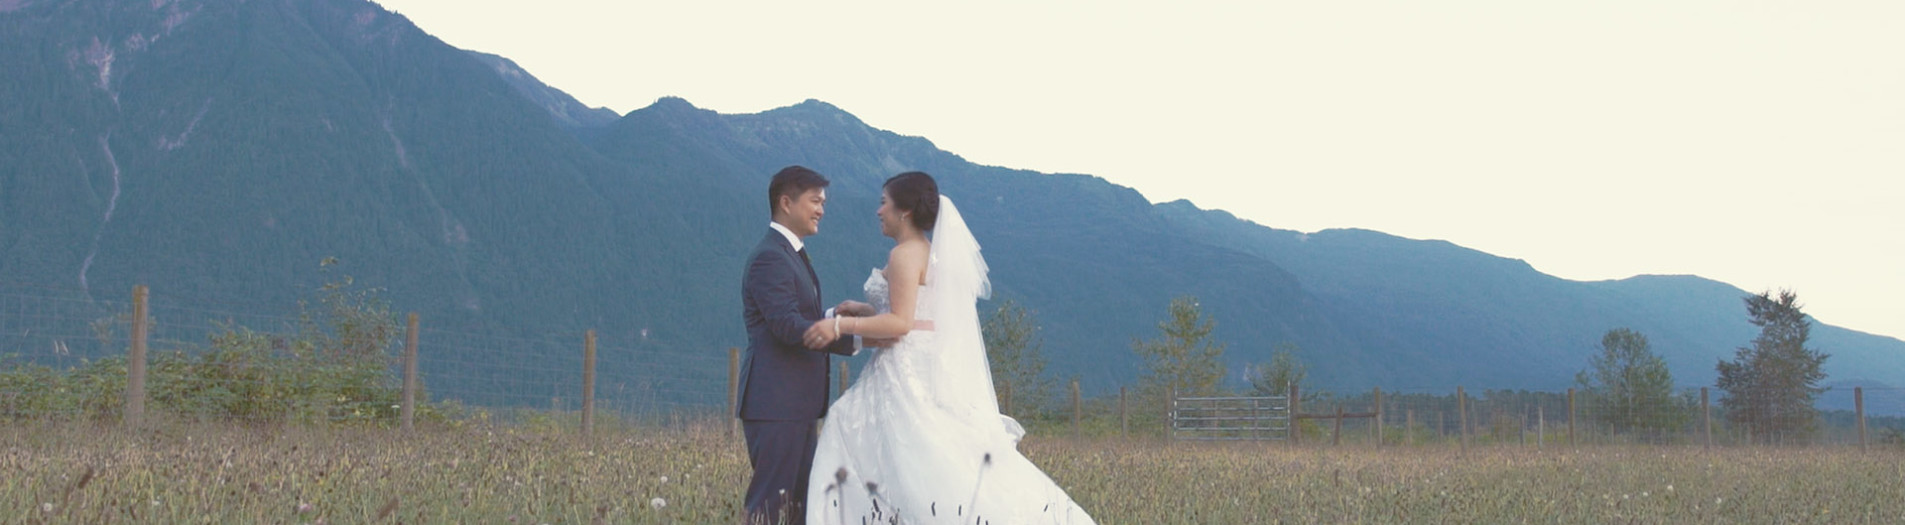 Carrie & Julien // Wedding Film // Fraser River Lodge, Agassiz,BC